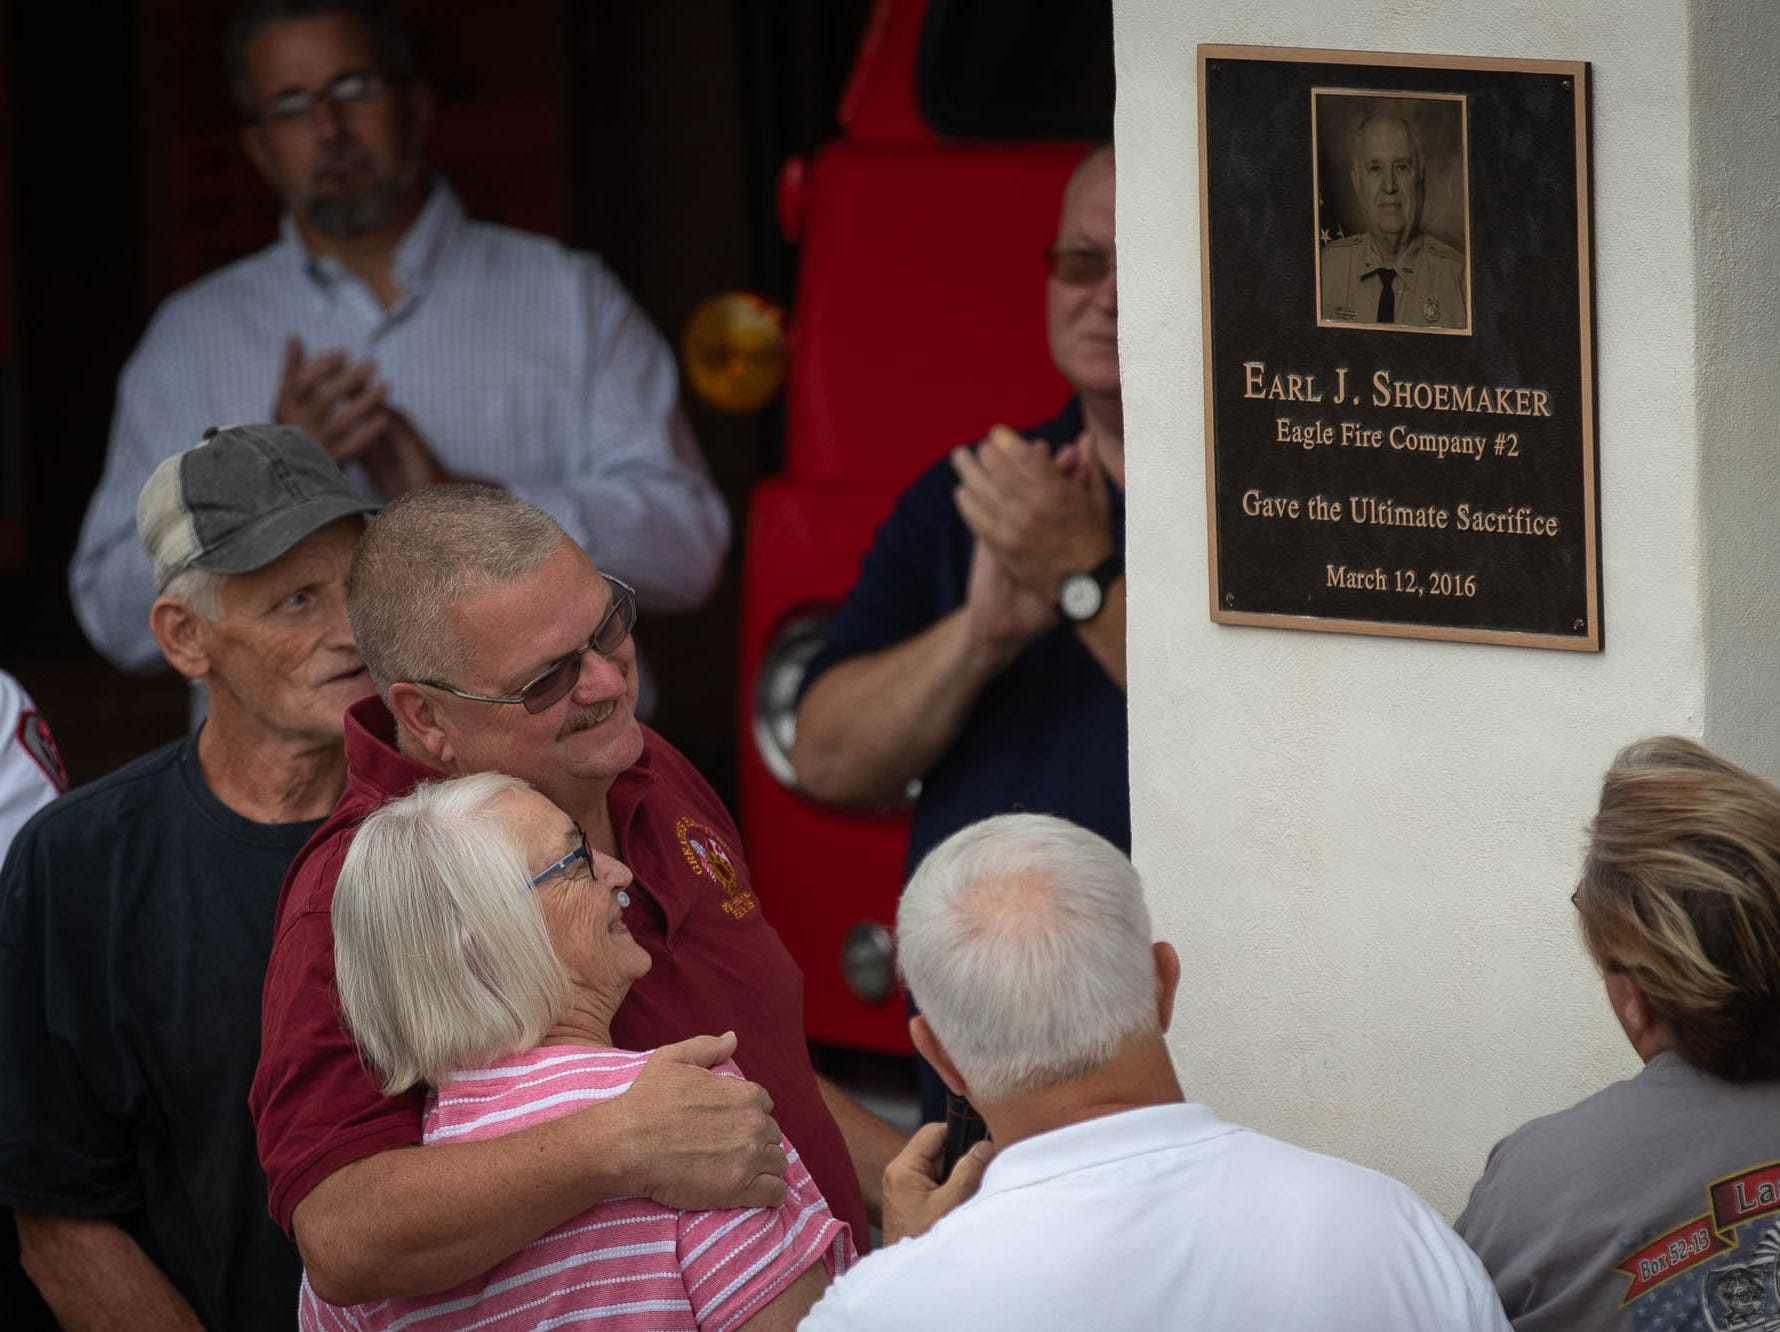 Firefighter Jim Startzel embraces Theresa Shoemaker, wife of fallen firefighter Earl Shoemaker, after they unveiled a plaque in remembrance of Shoemaker during the dedication ceremony for the new Greater Hanover Area Fire Museum, Saturday, Sept. 1, 2018, in Hanover. Earl Shoemaker, a 43-year volunteer of Eagle Fire Company, died in the line of duty while responding to a structure fire March 12, 2016.